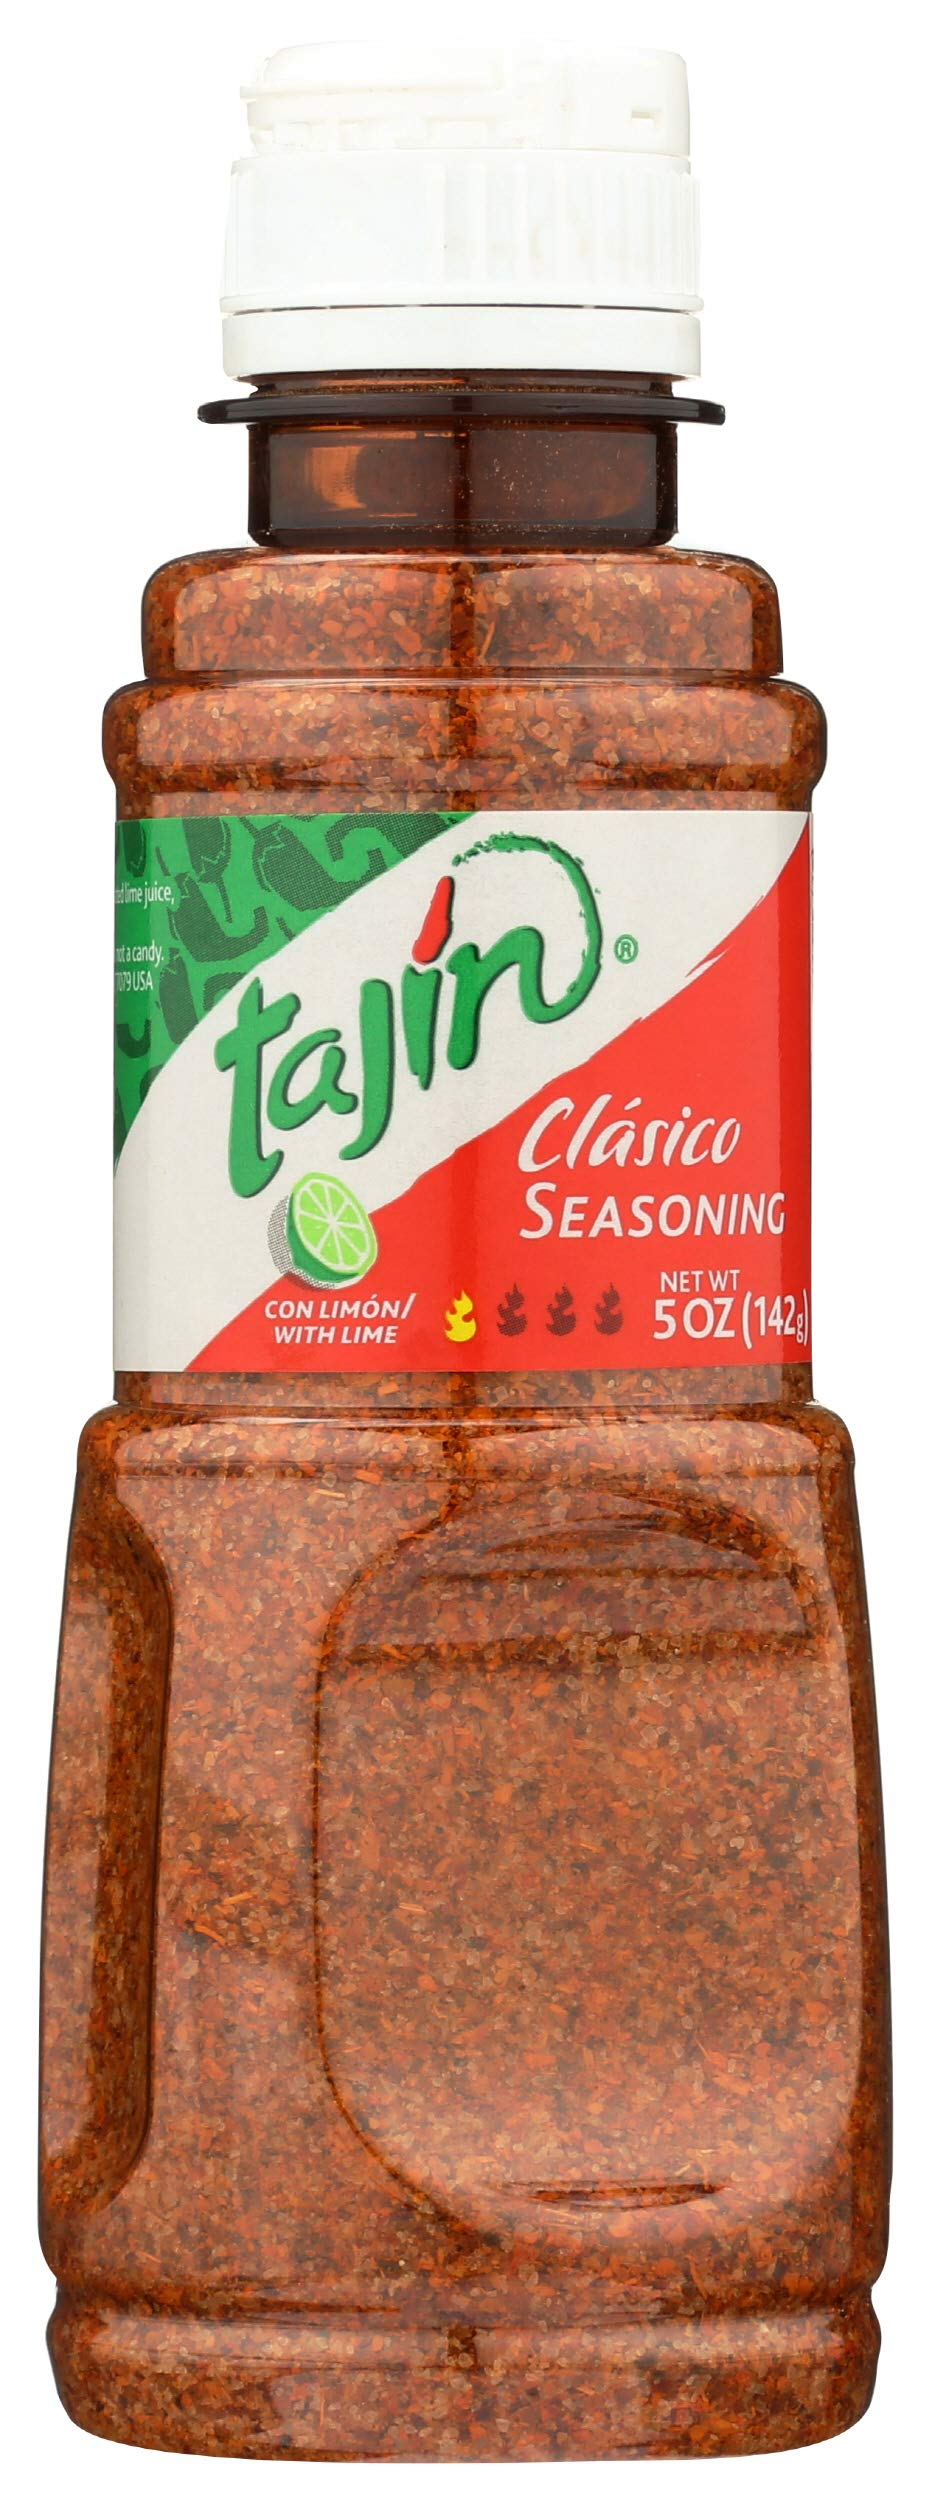 Tajin Clasico Seasoning for Fruits and Vegetables, 5 oz